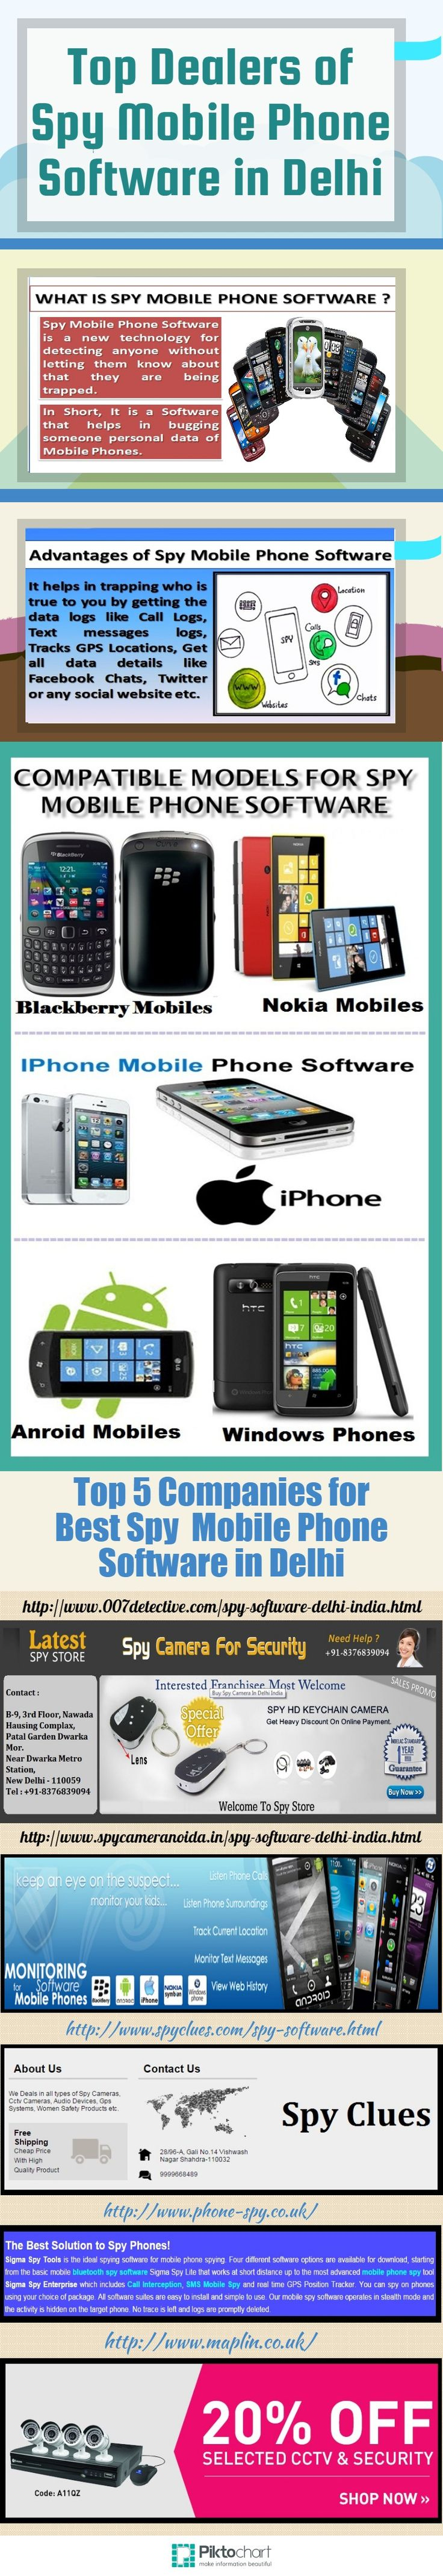 For best quality Spy Mobile Software, Latest Spy Store is best among all other Spy Stores. We provide the best featured Spy Mobile Phone Software with lowest price and heavy discounts. Check out here for more information http://www.007detective.com/spy-software-delhi-india.html